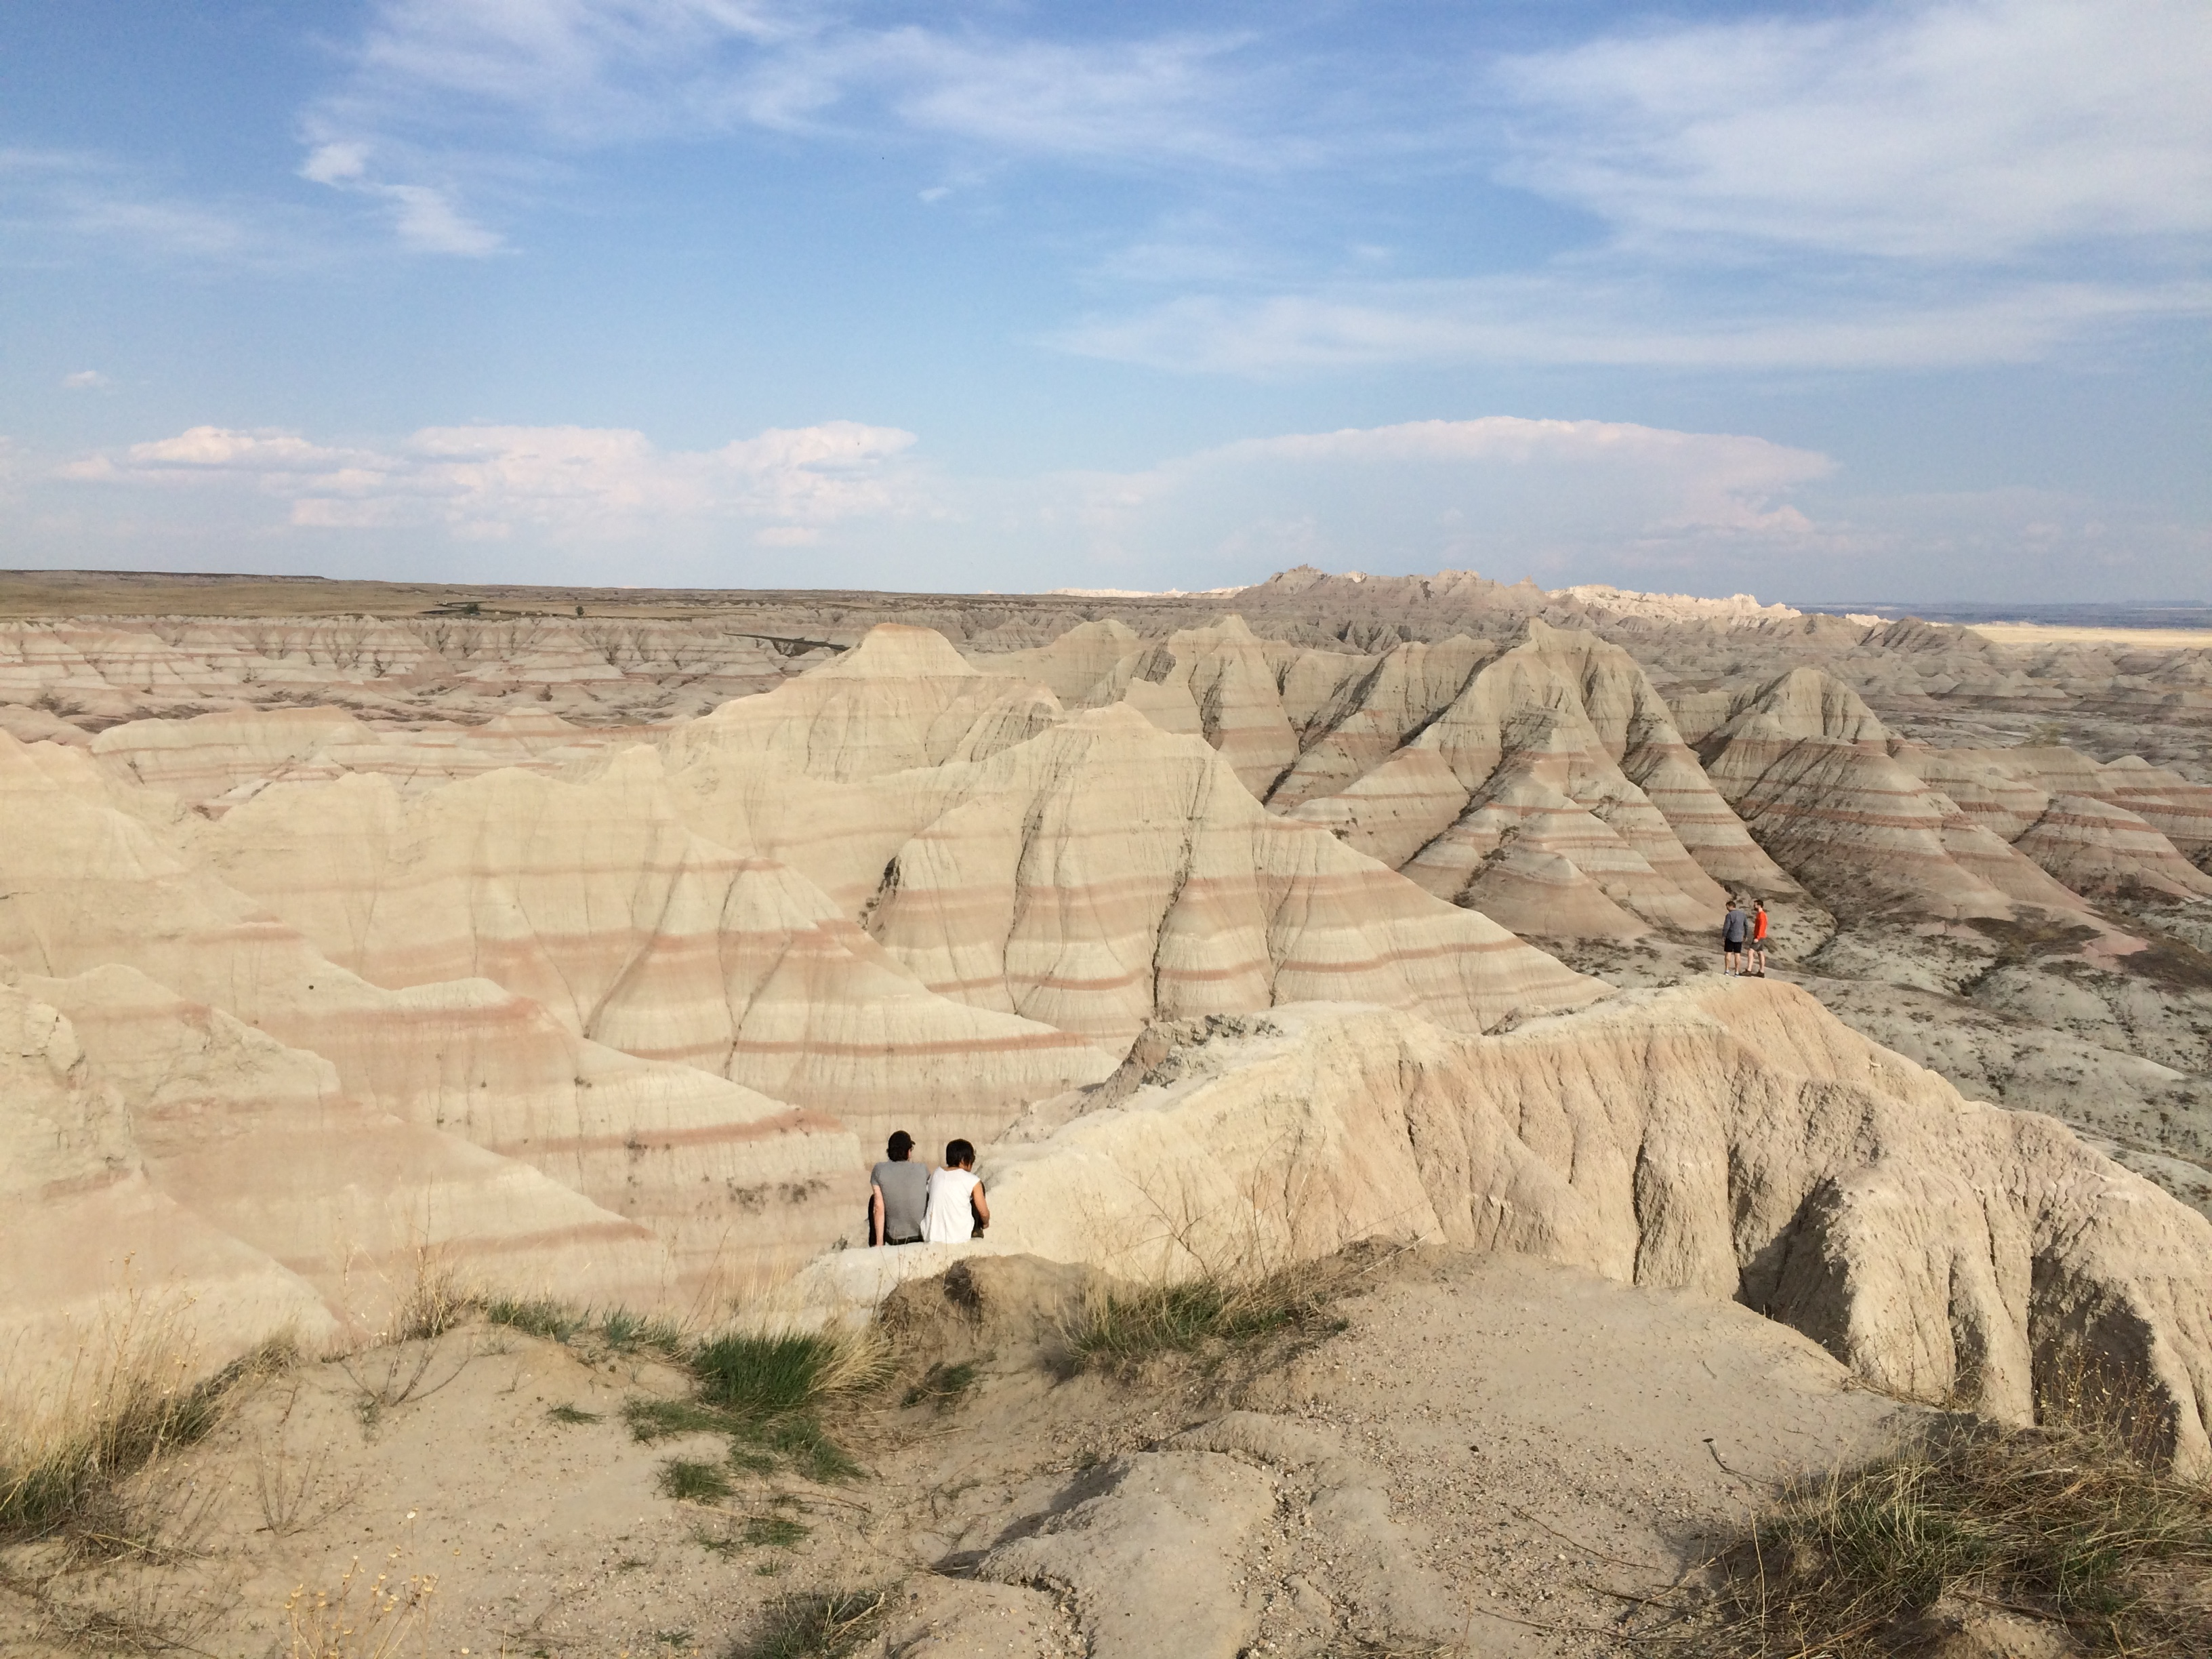 Where we are right now: Badlands National Park for our seventh Tech Summit. It's a time for us to discuss goals in person — and experience a new location together. Photo: Haley Hoffman